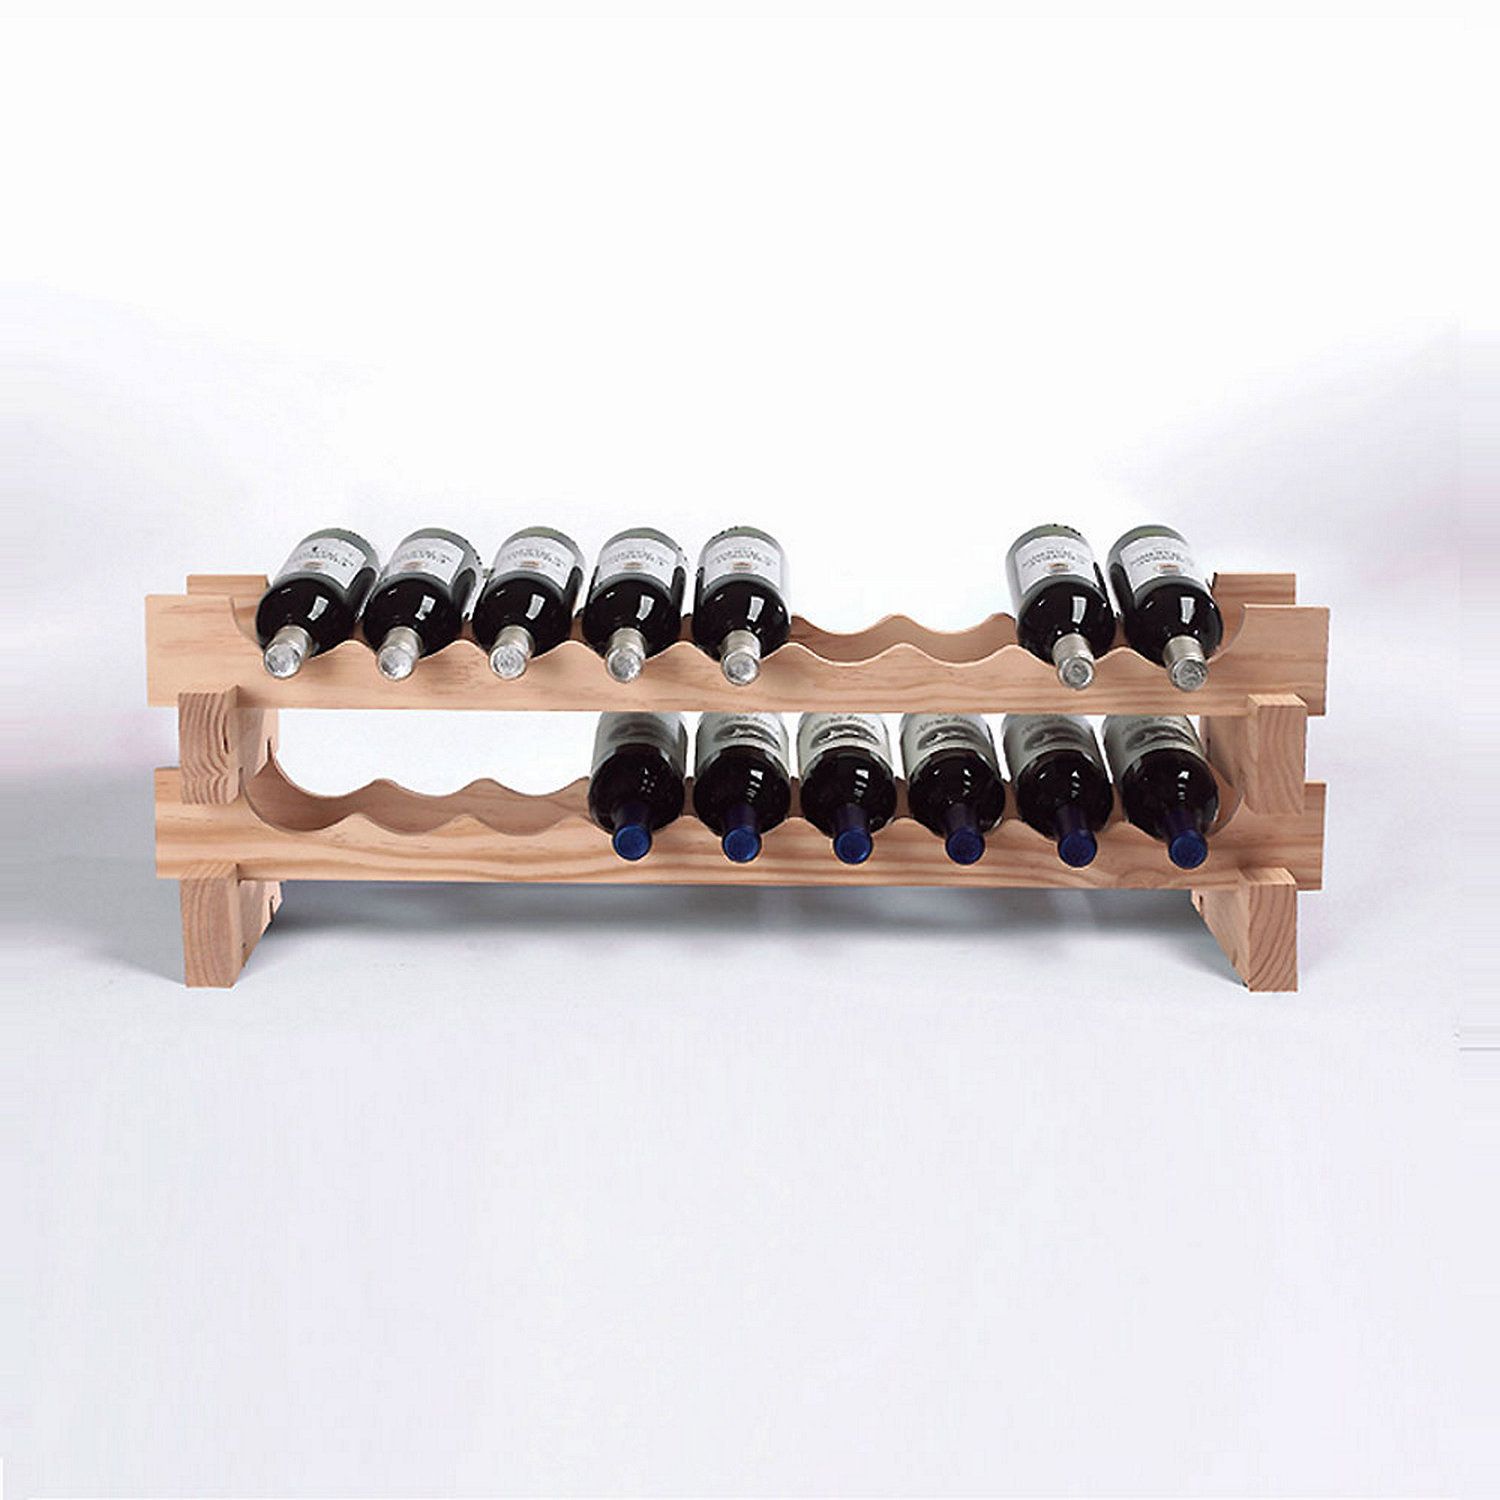 bottle stackable wine rack kit (natural)  wine enthusiast - preparing zoom